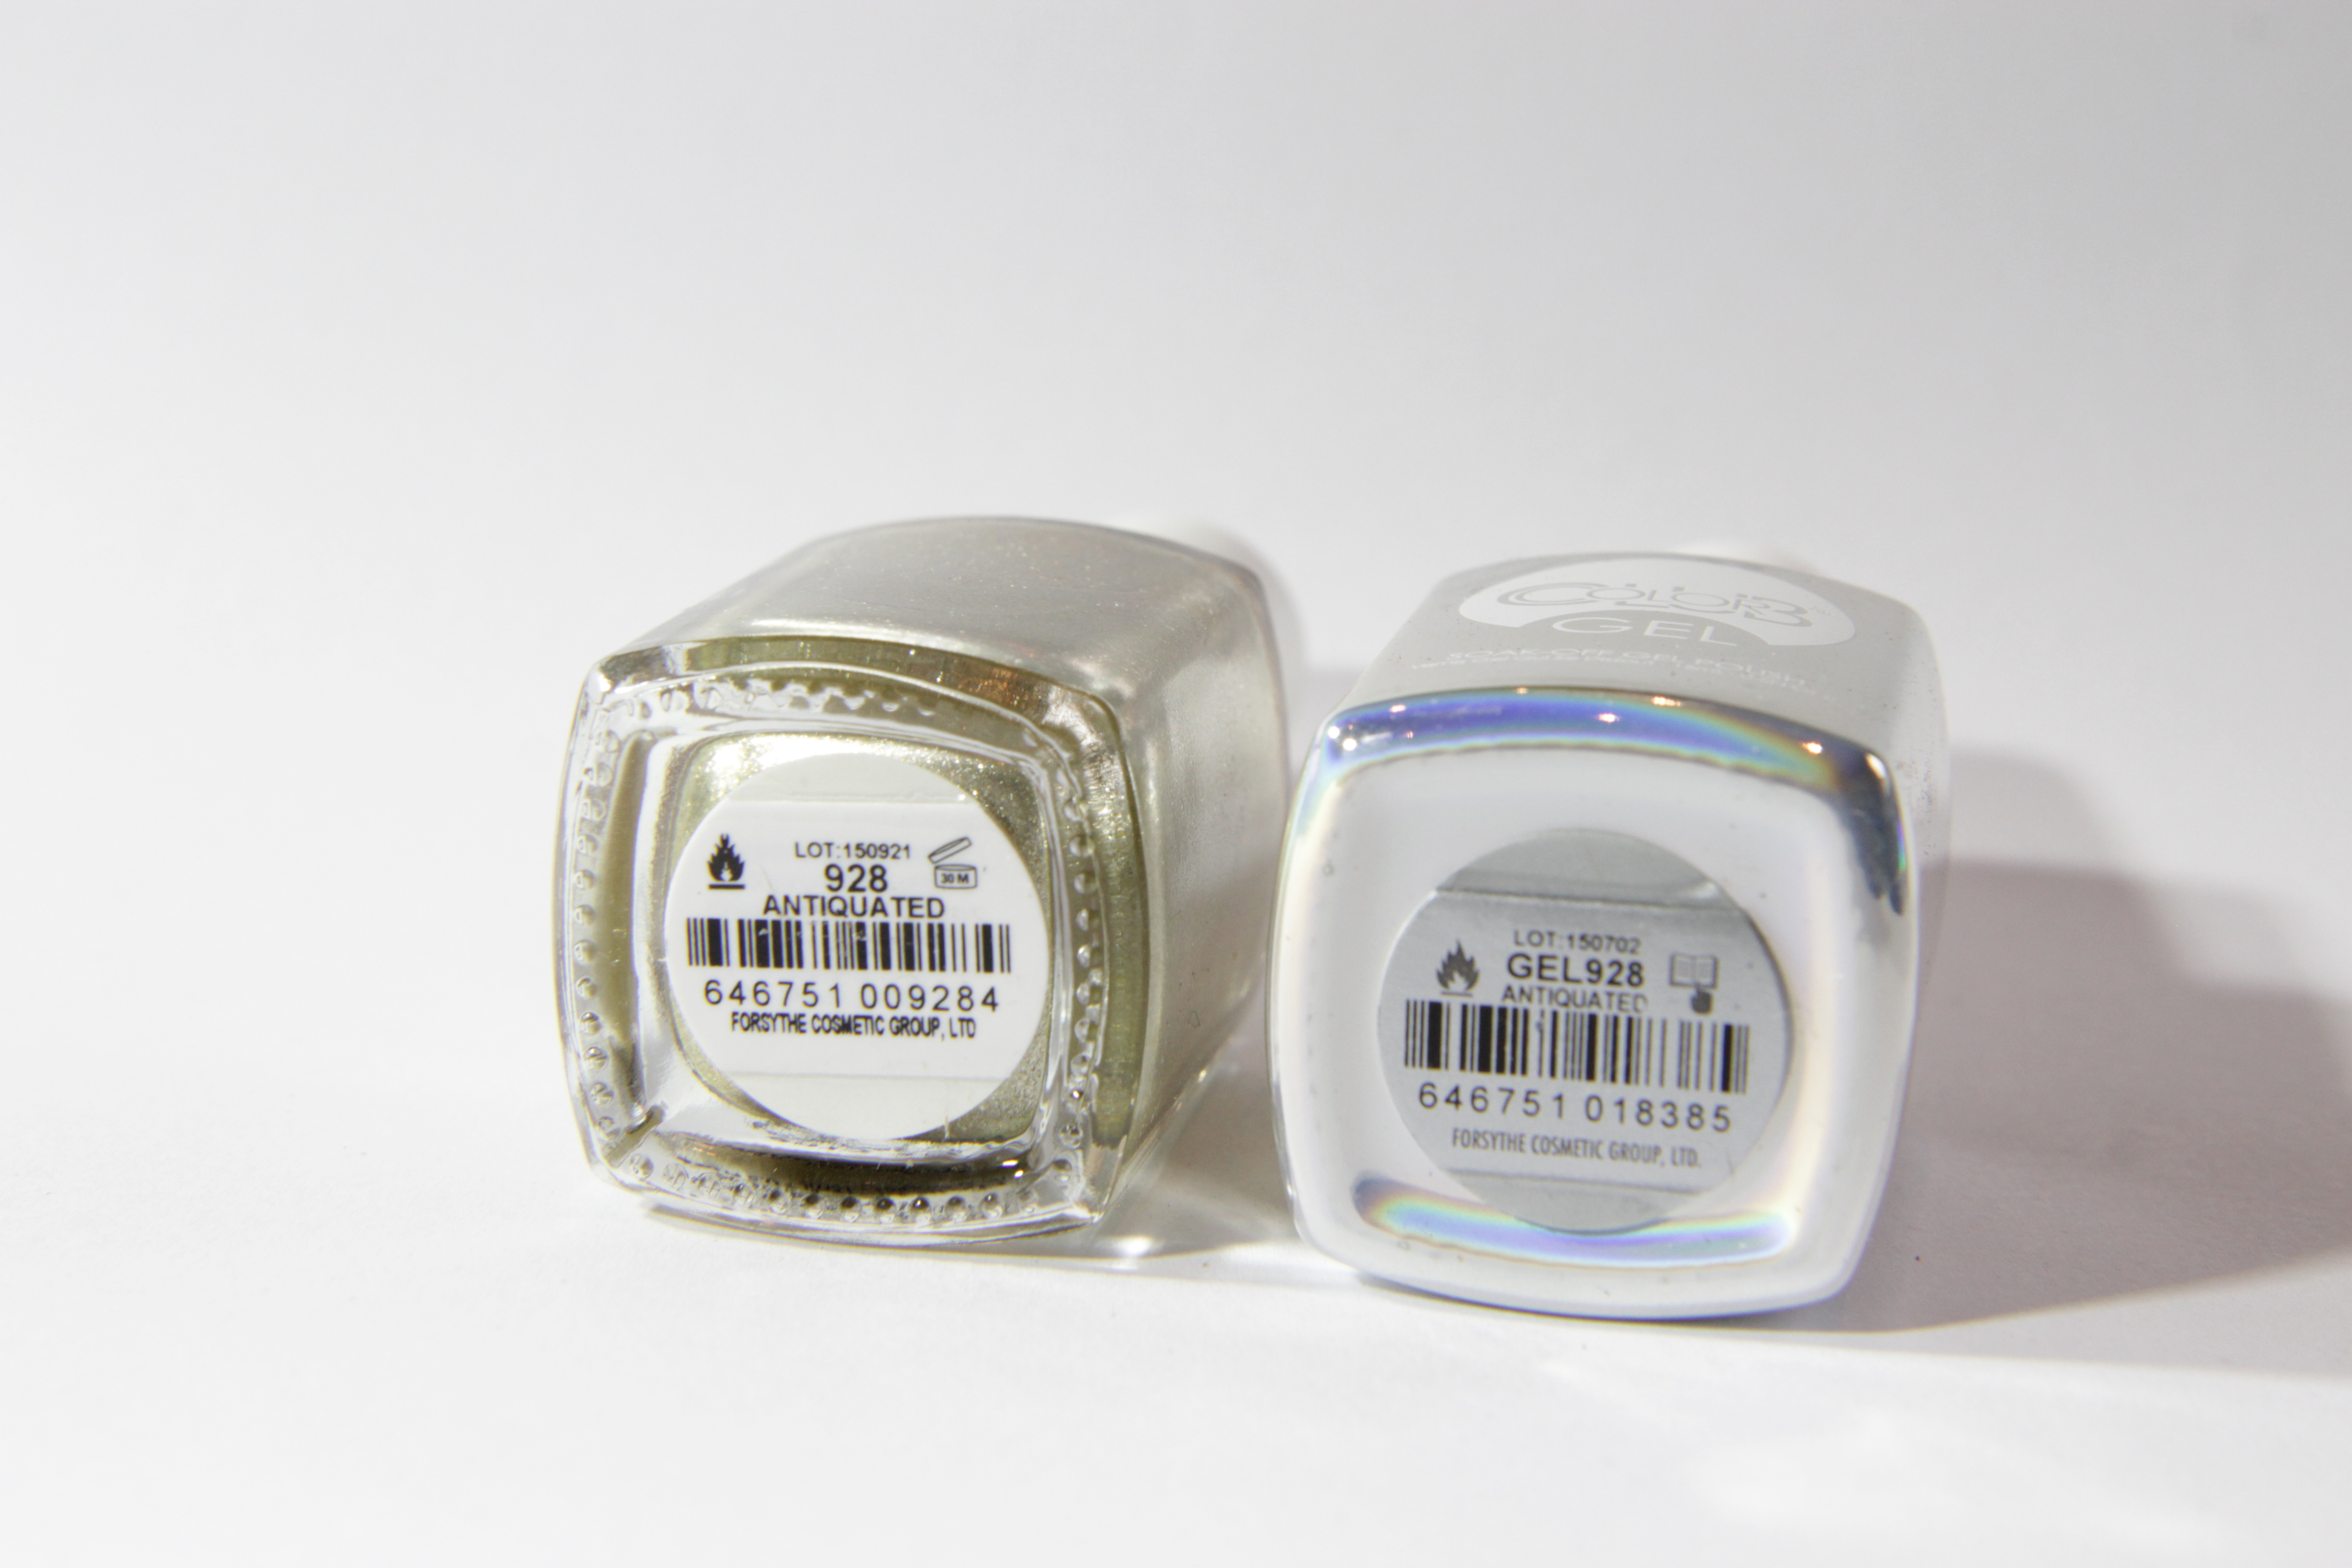 #0928 ANTIQUATED Color Club Duo Nagellack Nail Lacquer and Soak-Off Gel Polish fein gold metallisch